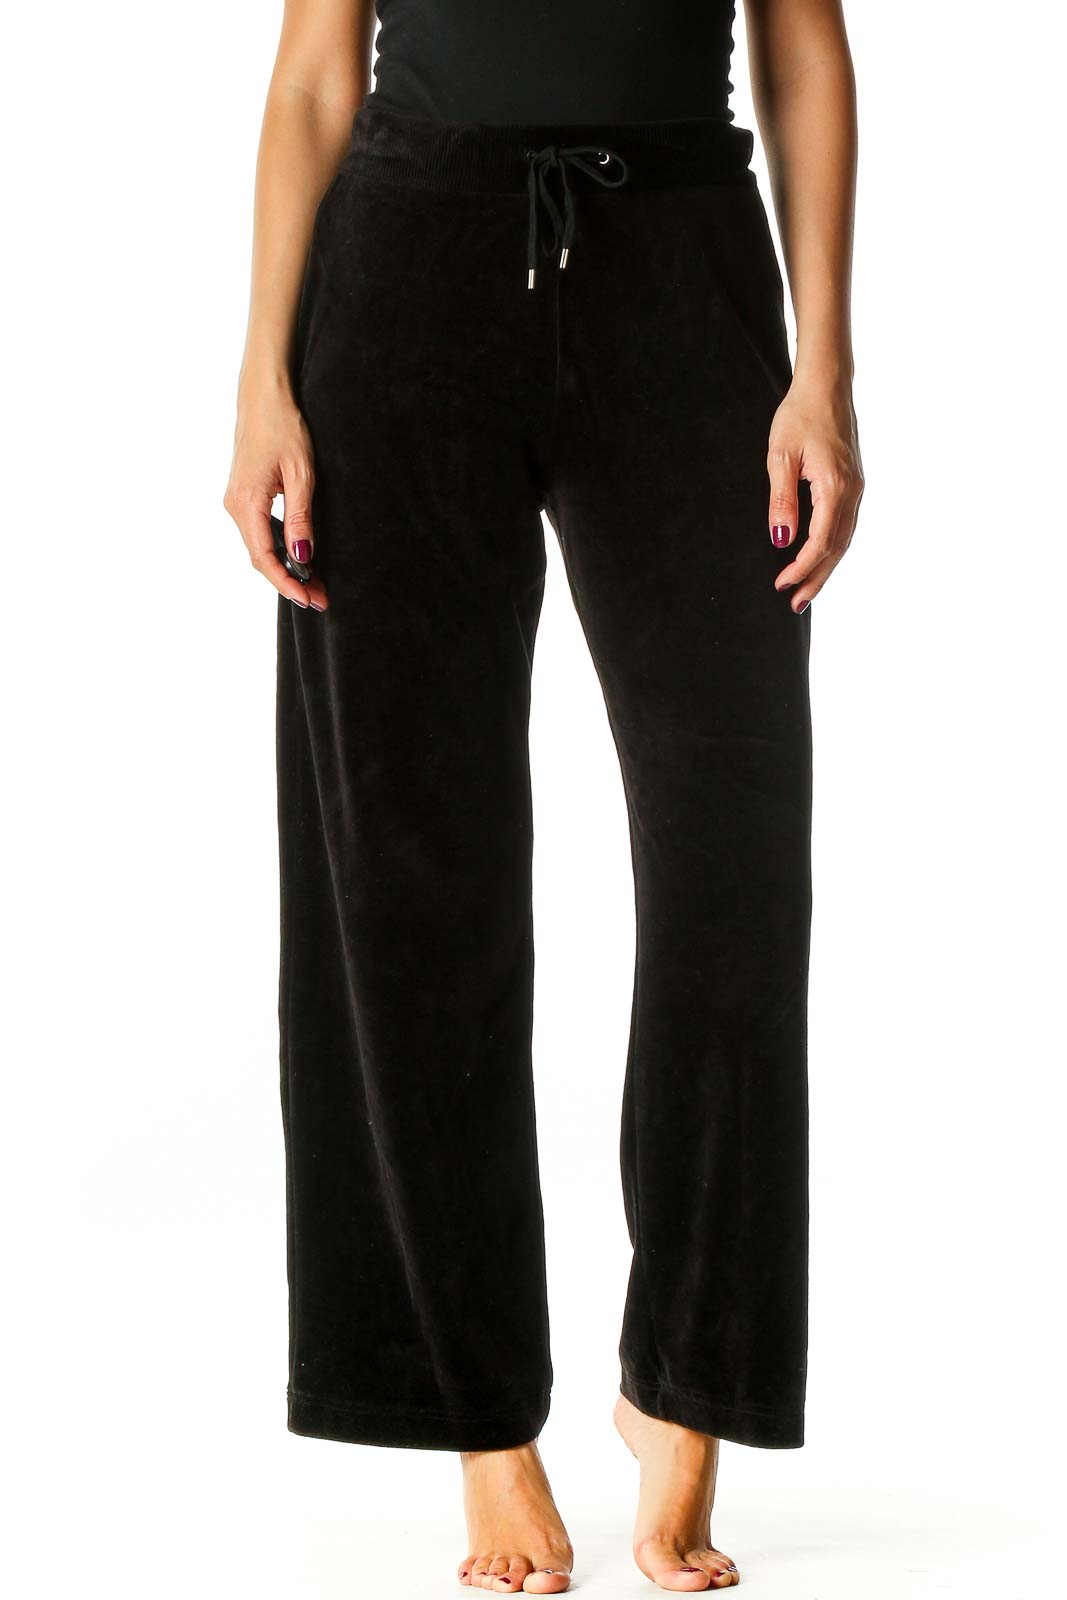 Black Textured Retro Sweatpants Front